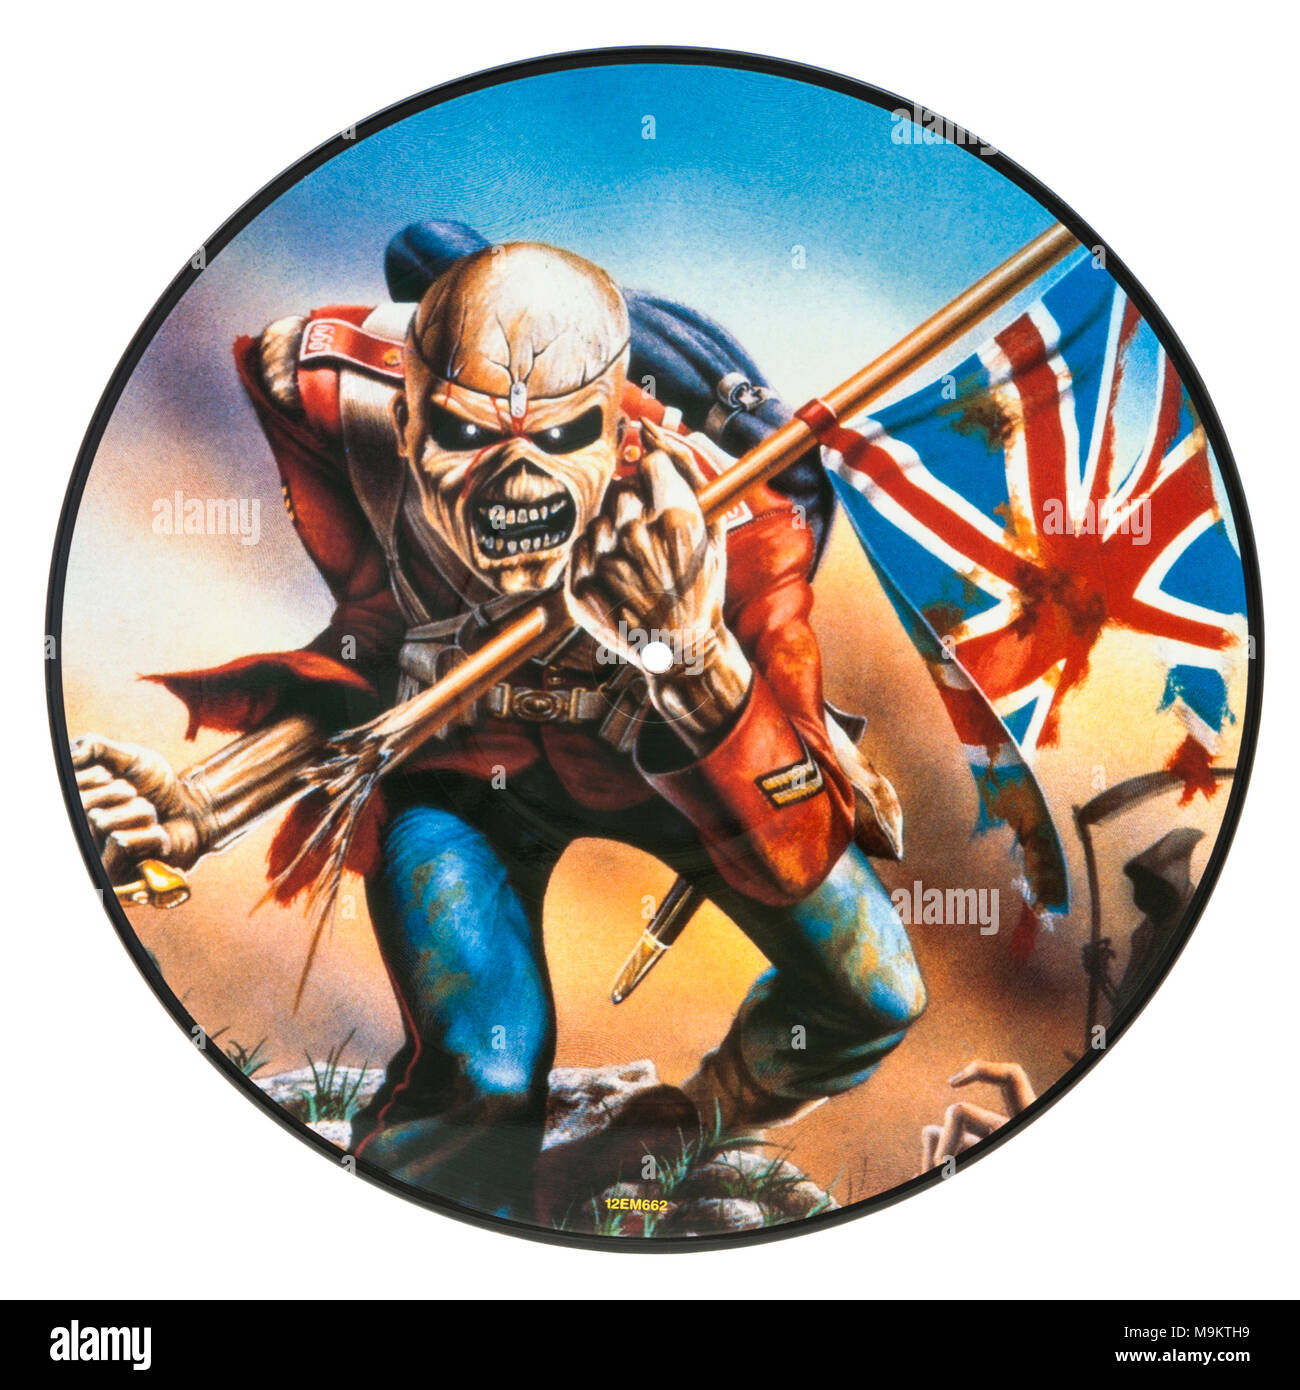 2005 Limited Edition Picture Disc (vinyl record) by the British heavy metal band Iron Maiden (The Trooper, Live) - Stock Image